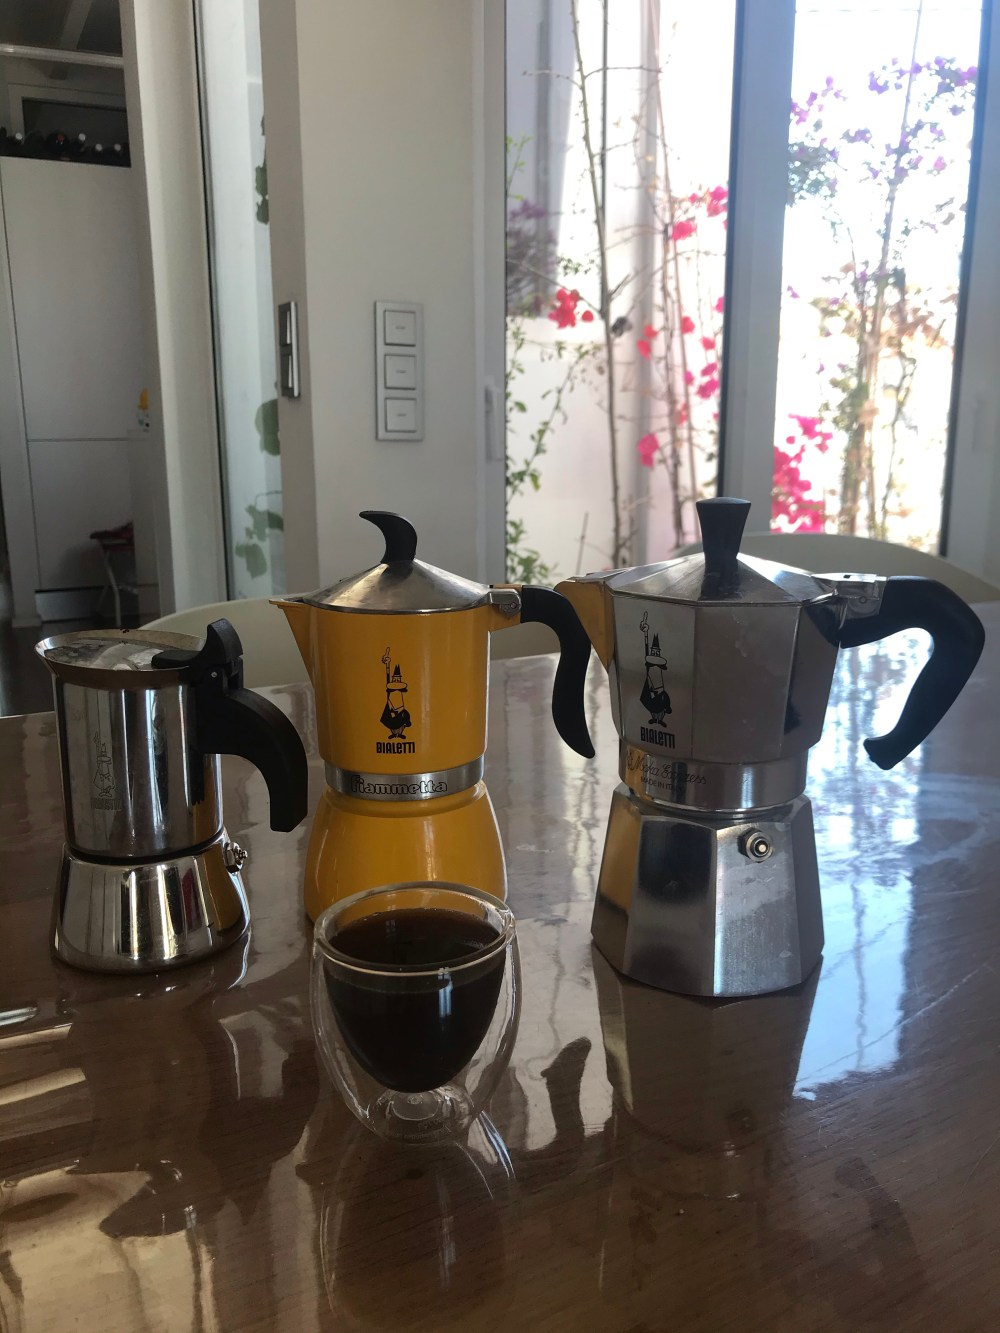 The three models of Bialetti coffee makers I use at home